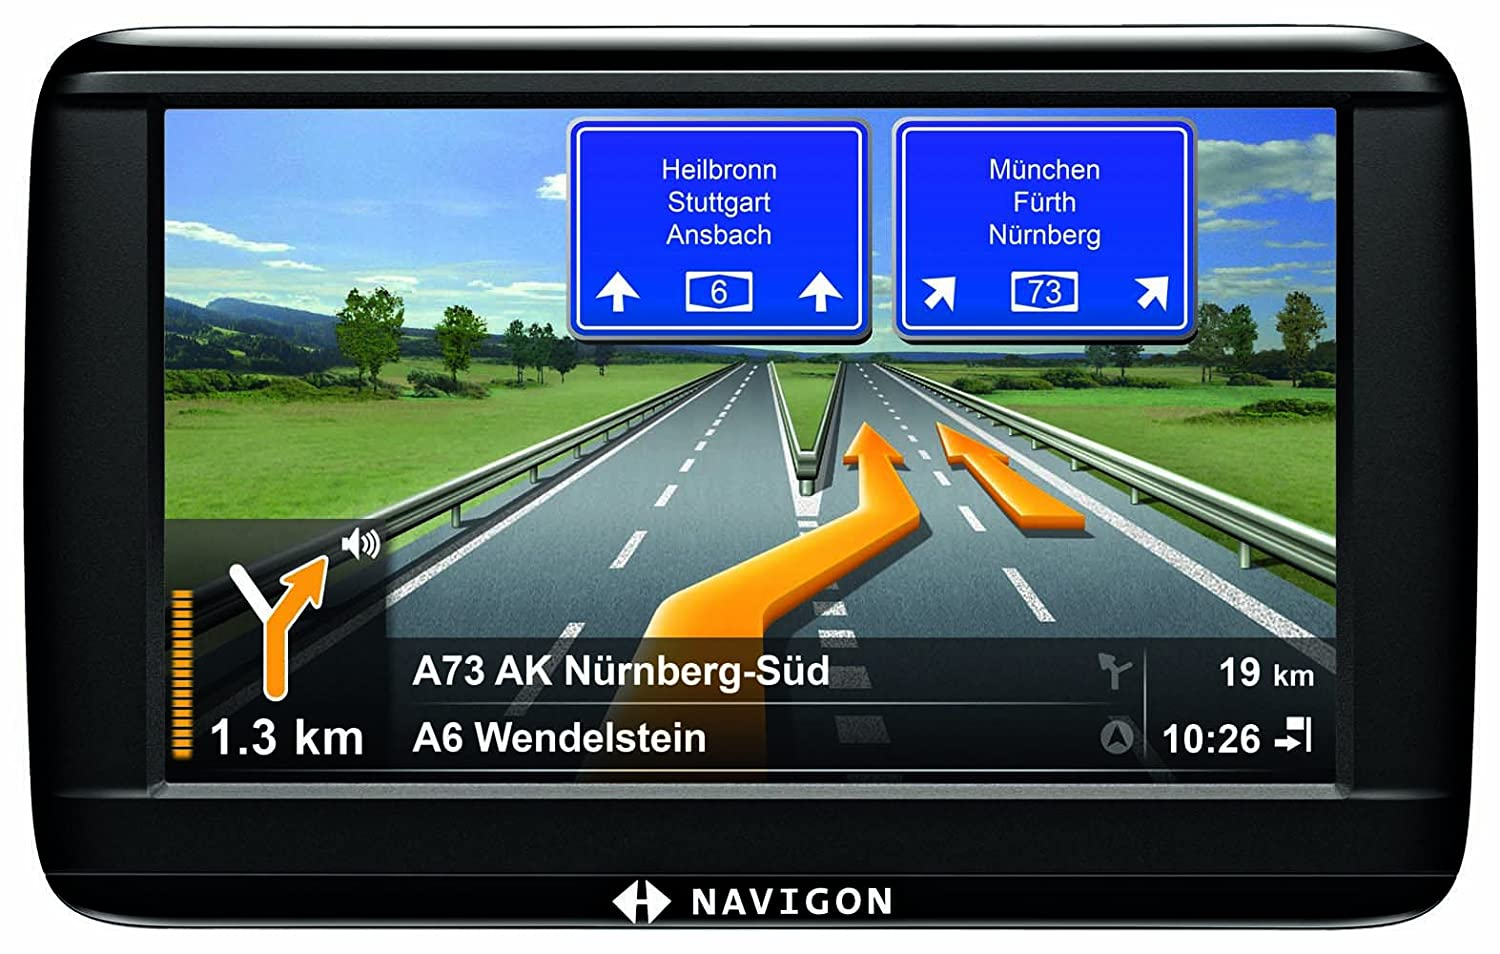 NAVIGON 42 Plus Navigationssystem (10,9cm (4,3 Zoll) Display, Europa 44, TMC, NAVIGON Flow, Text-to-Speech, Aktiver Fahrspurassistent) Navigon AG B10020076